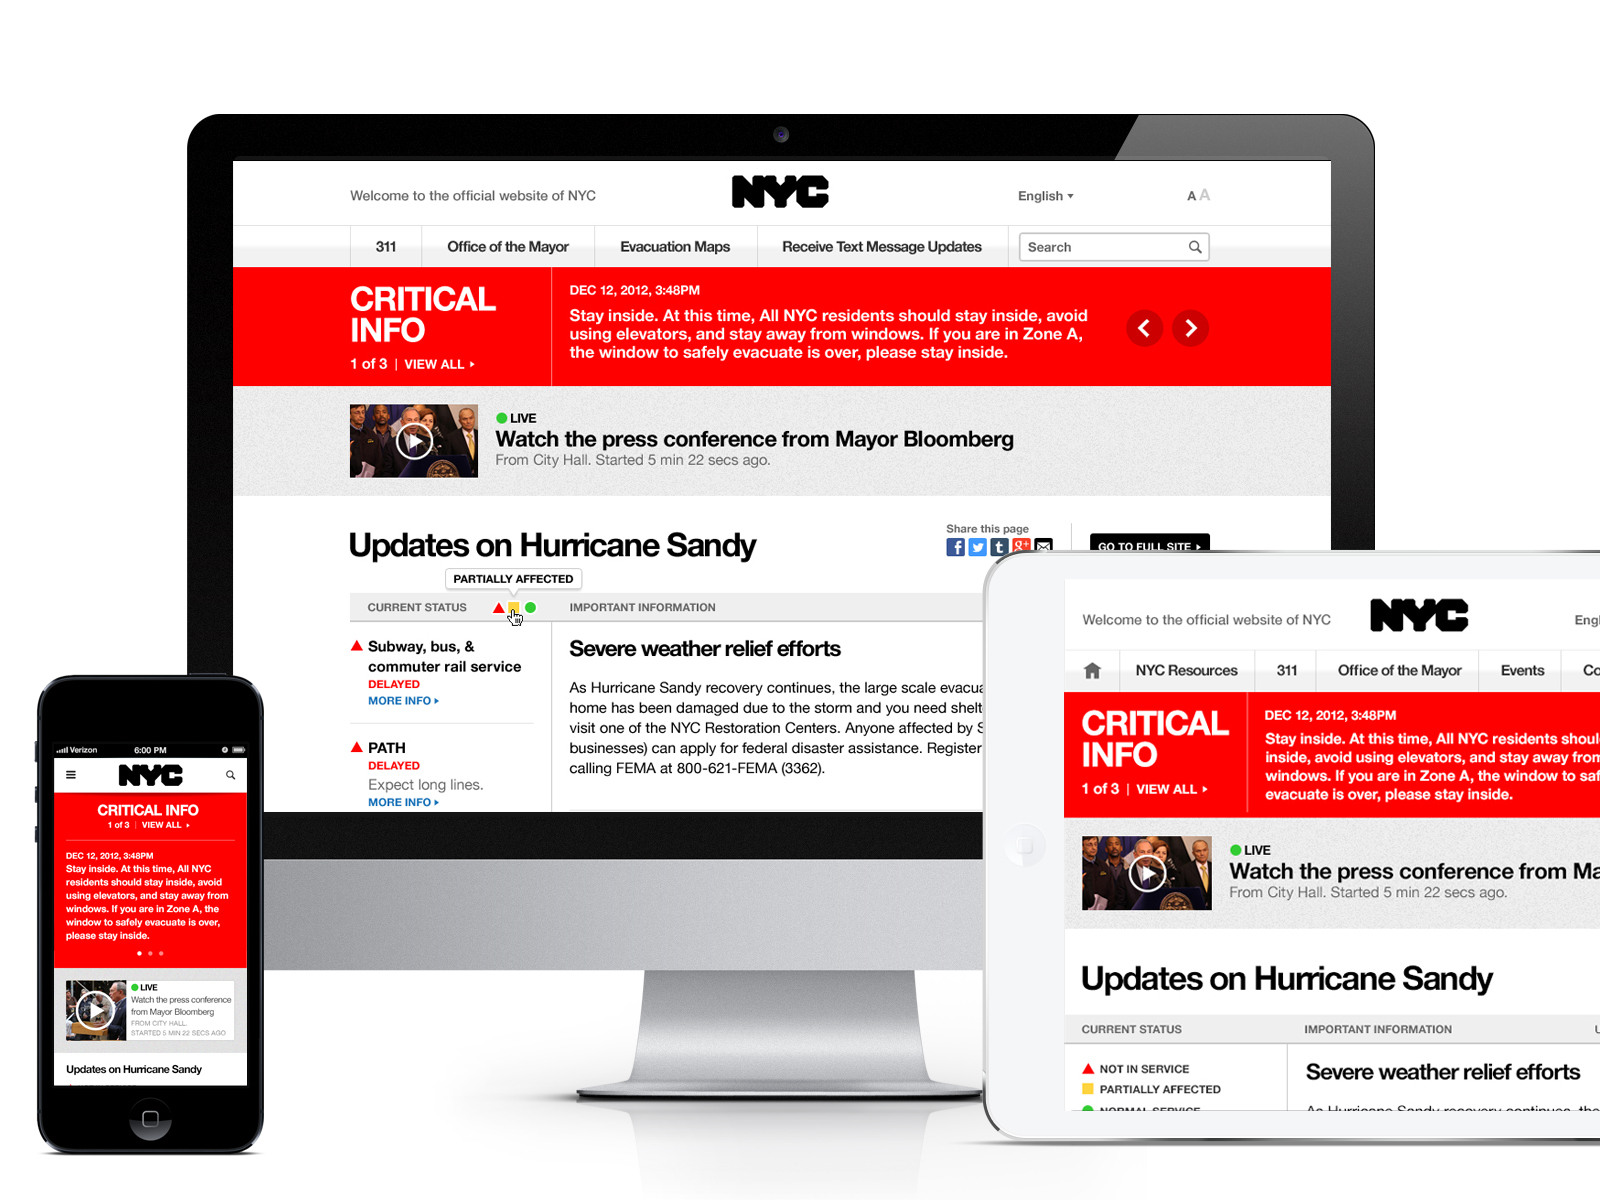 A special, pared-down homepage takes over for NYC.gov in case of an emergency.